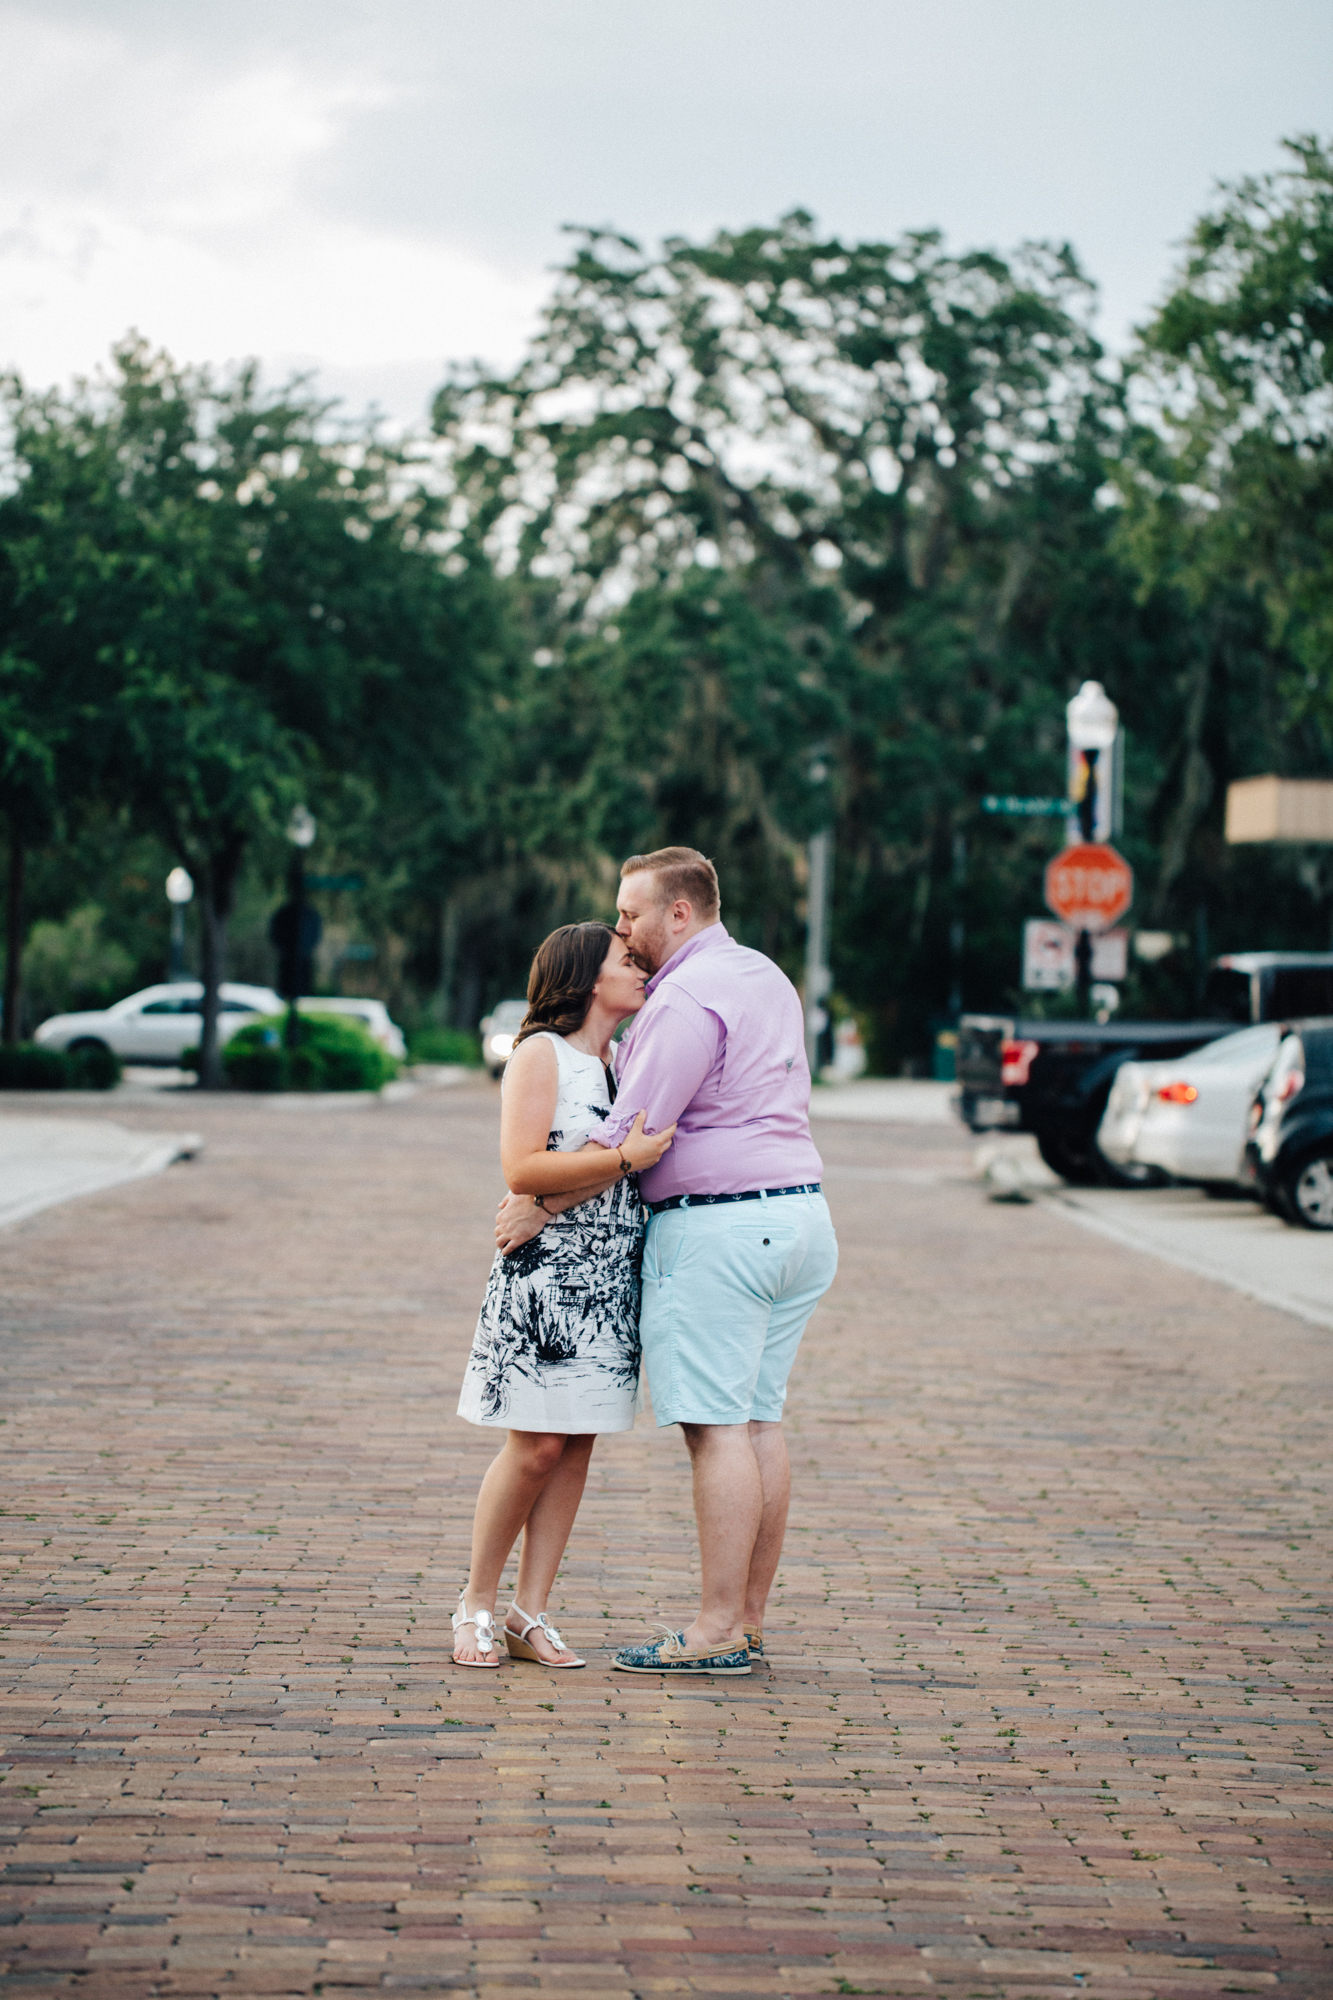 Winter Garden Engagement Photographer-10.jpg